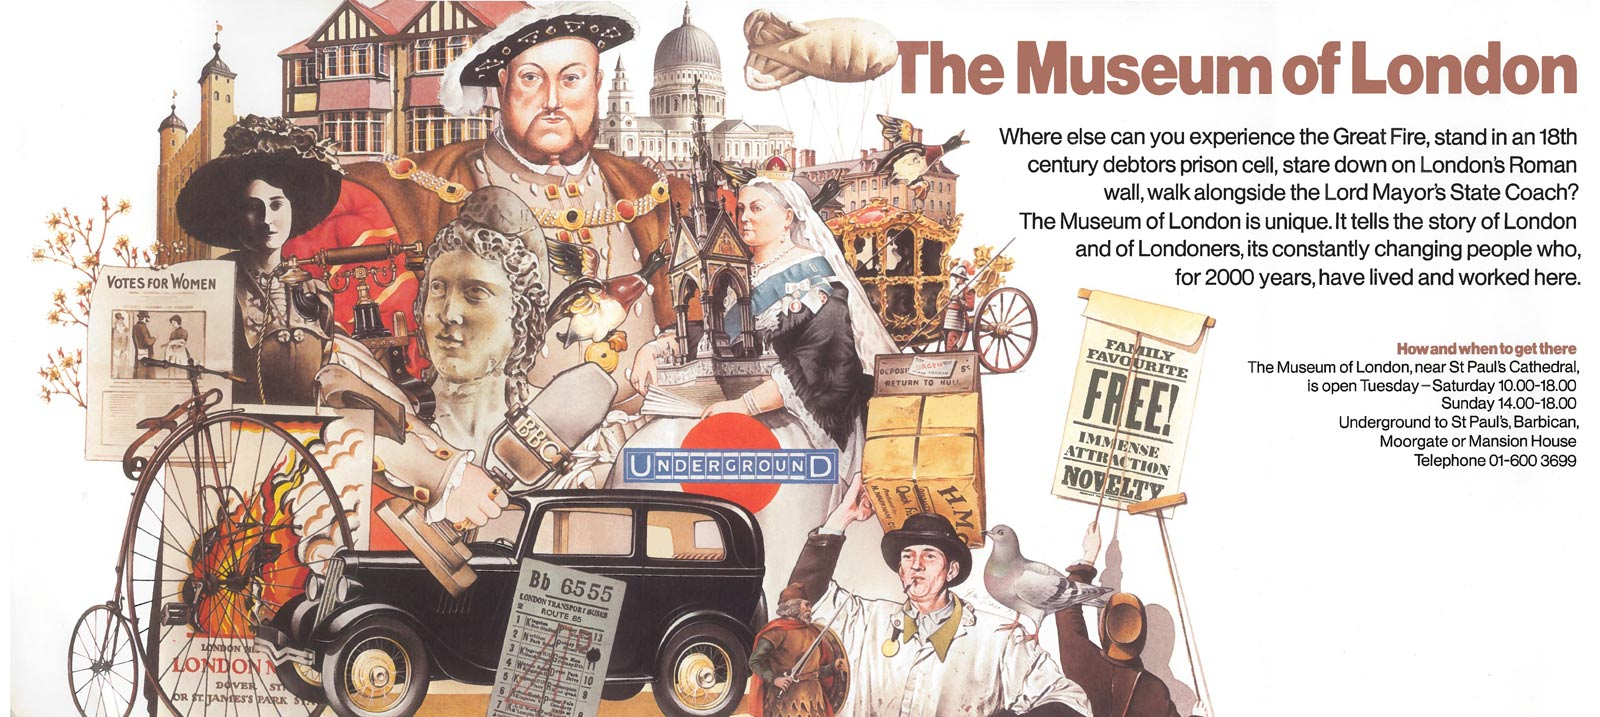 A poster for the Museum of London from 1976.